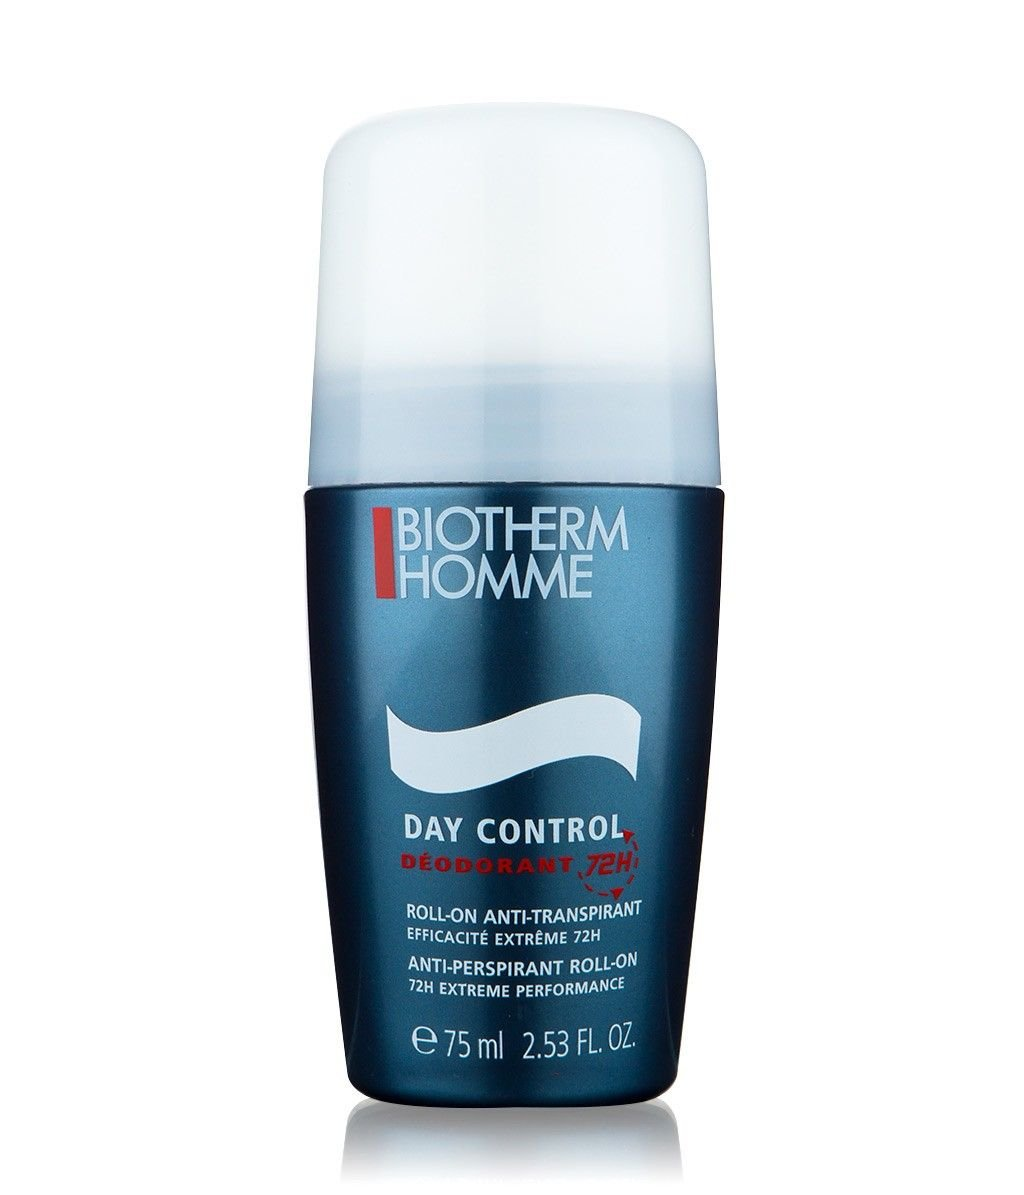 Biotherm Homme Day Control Cosmetic 75ml  72H